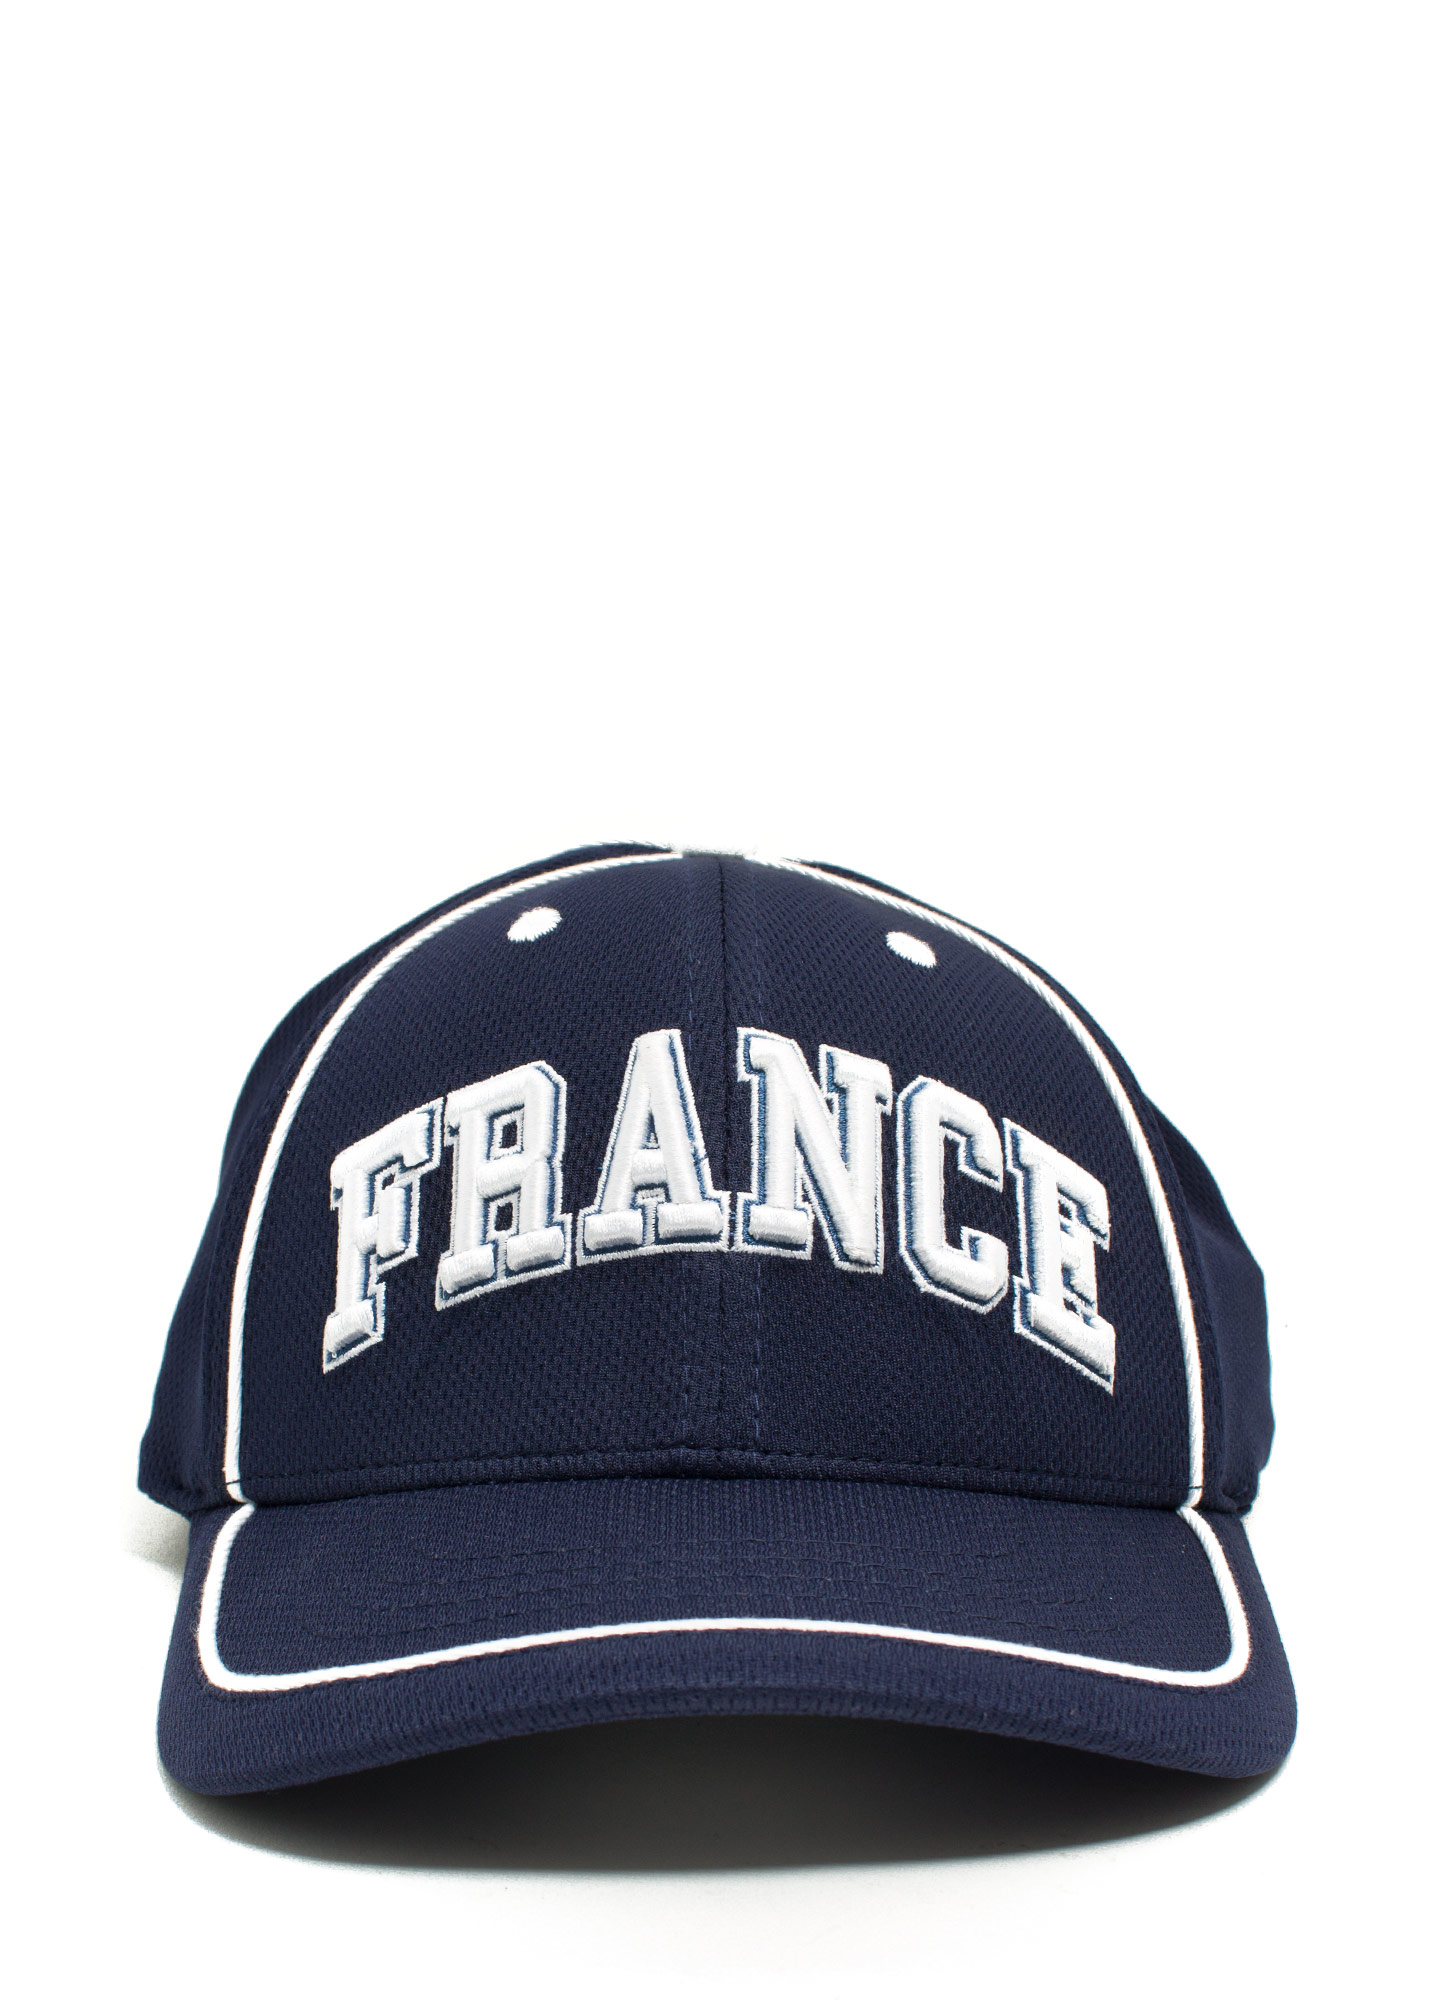 International Country Snapback Hat FRANCE